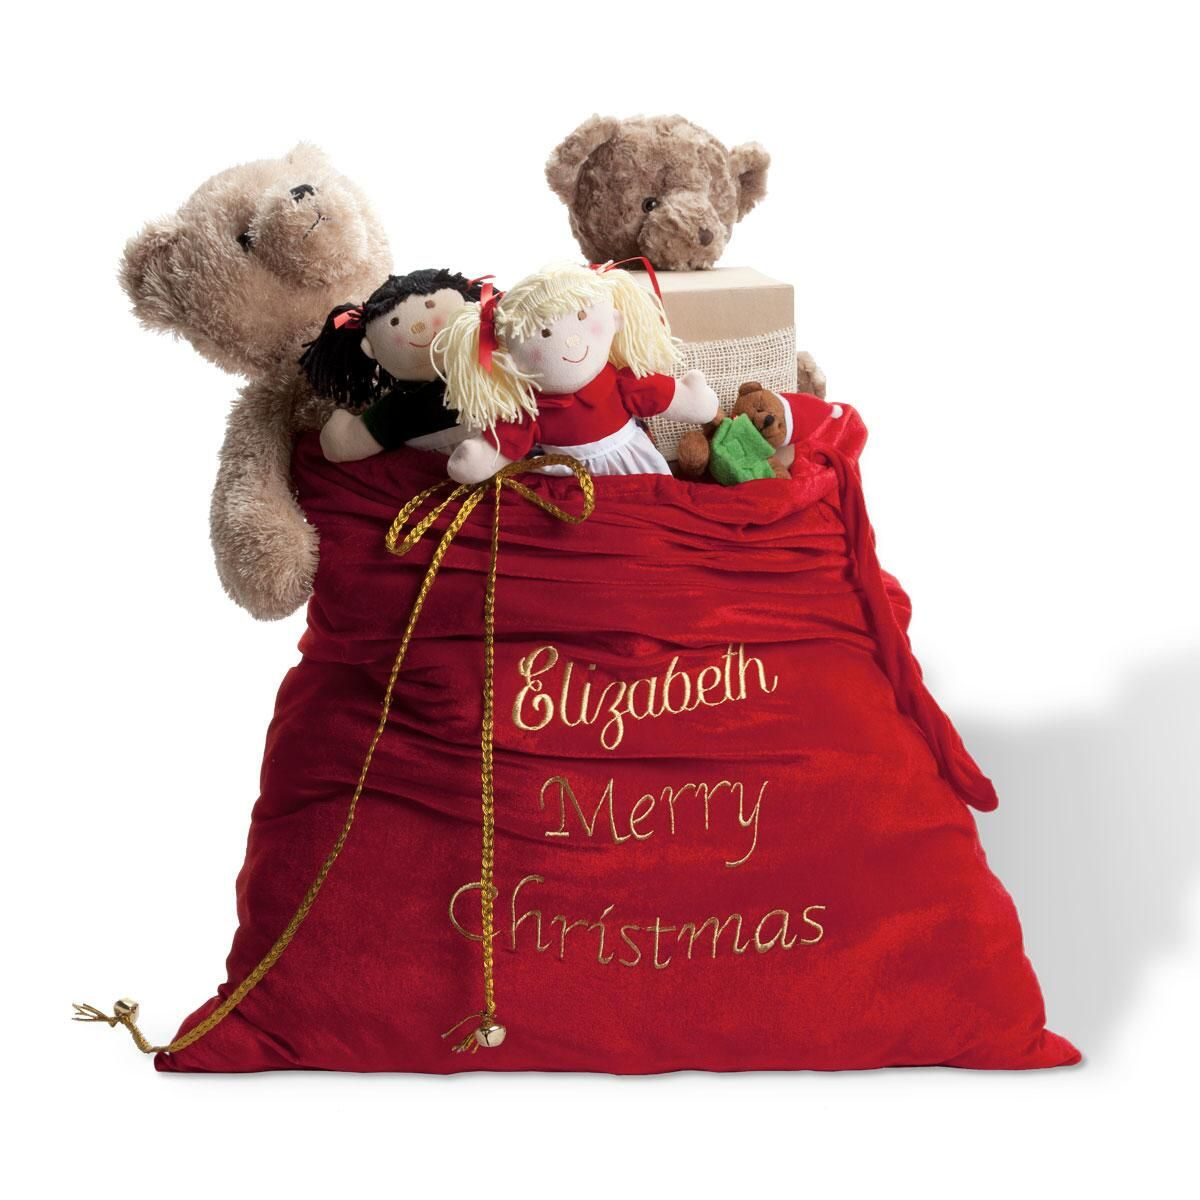 Deluxe Personalized Santa Sack